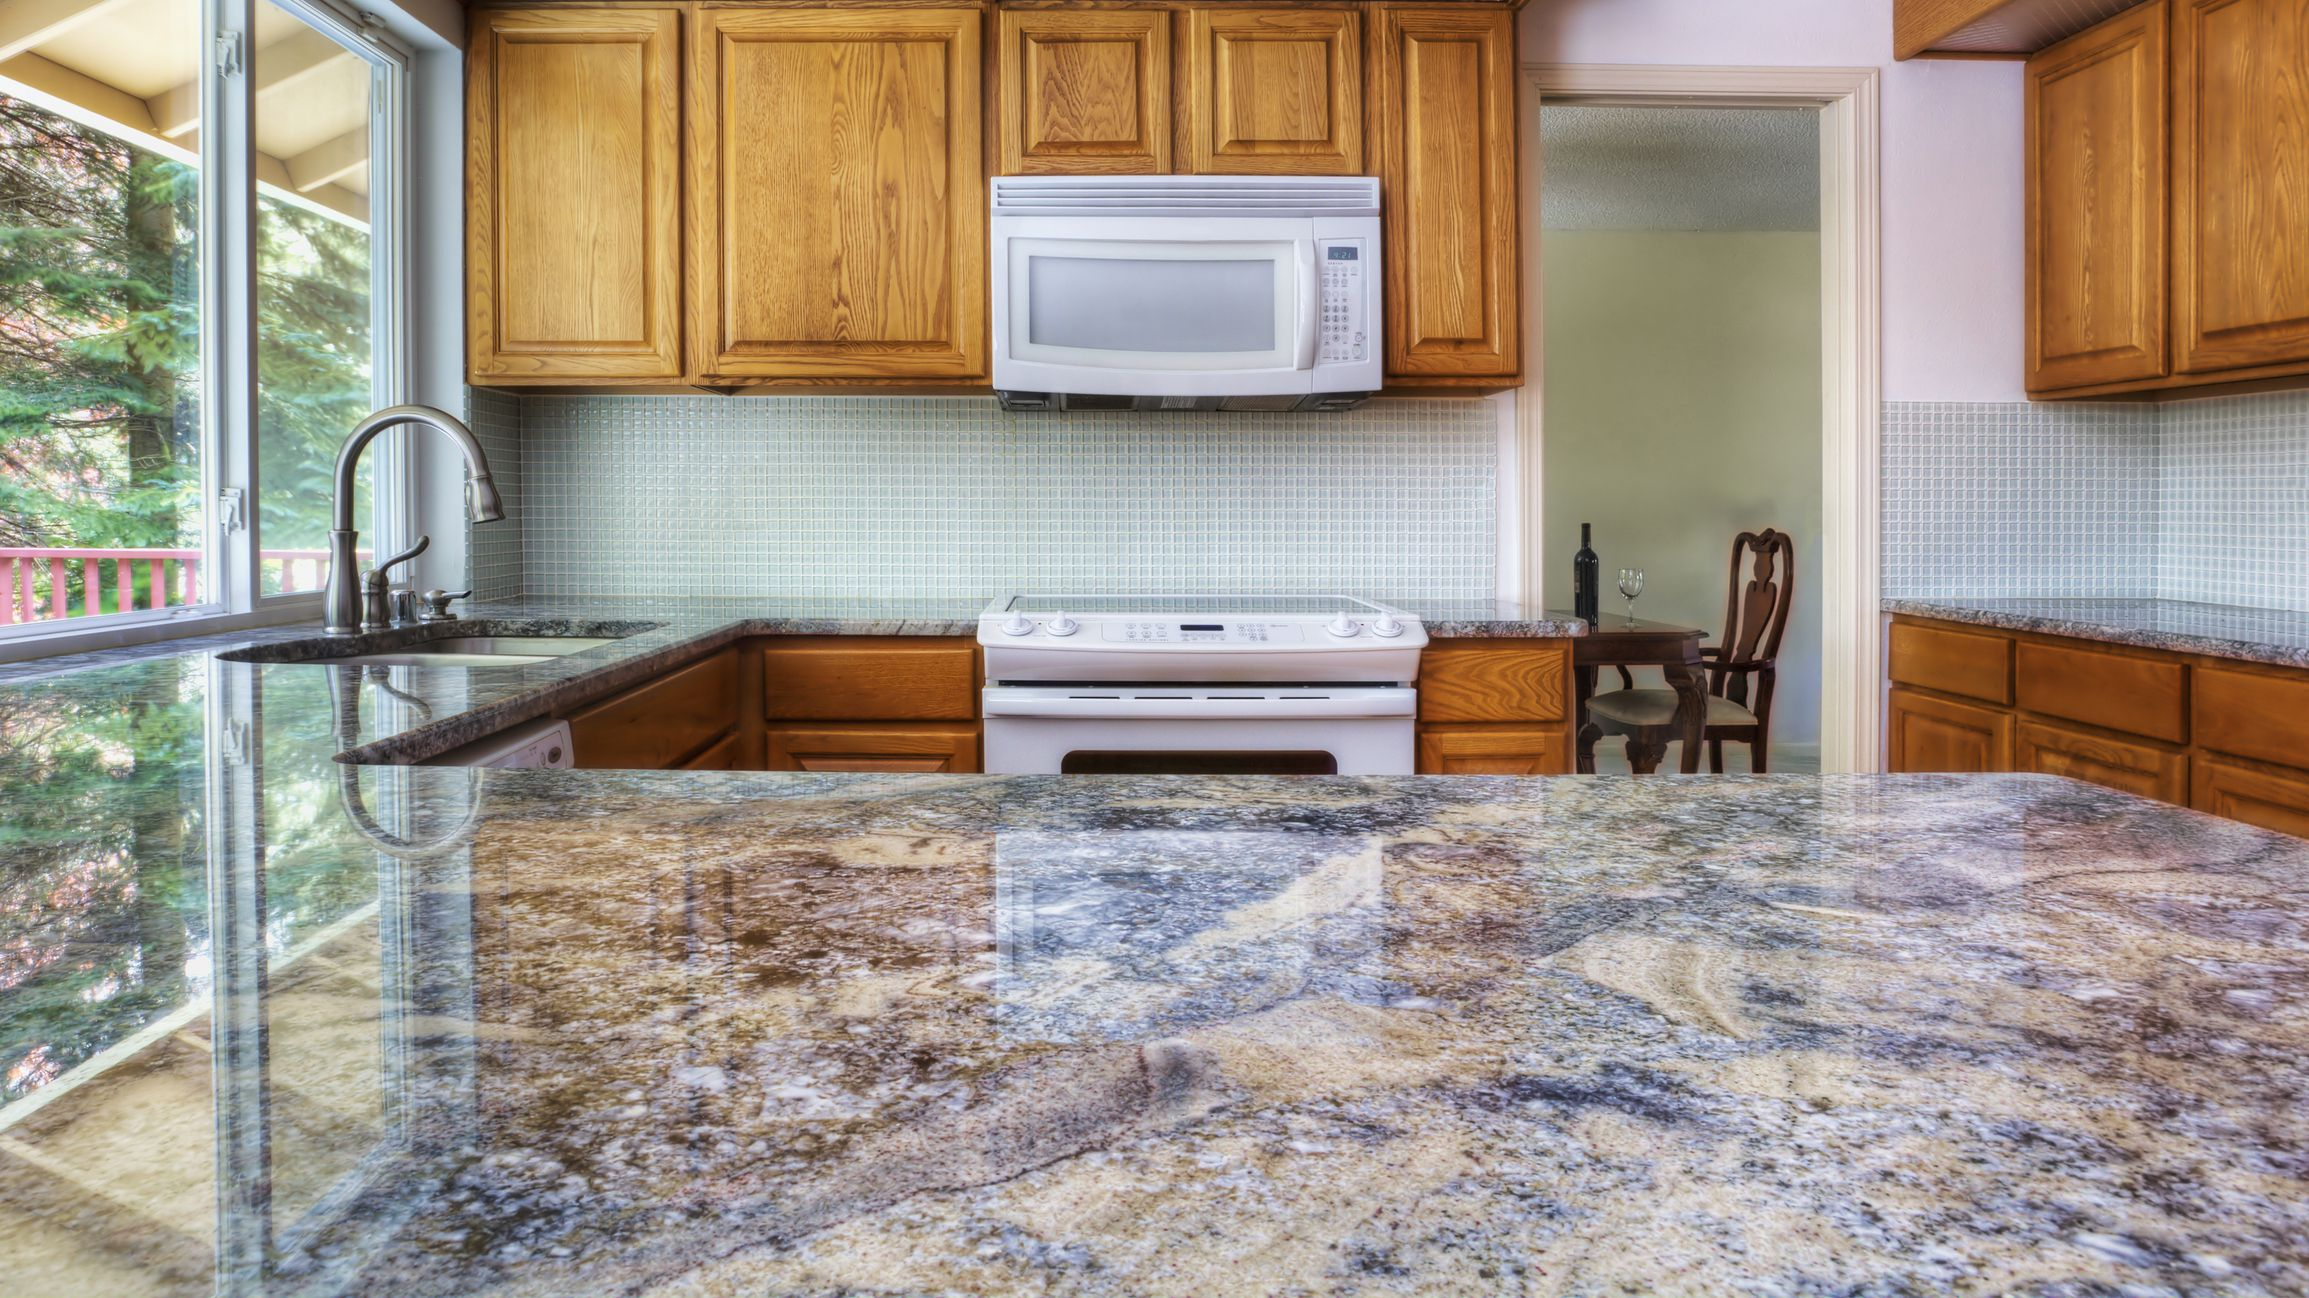 Dont over improve 3 tips to pick the best flooring 5 steps to prepare you for choosing a countertop dailygadgetfo Choice Image